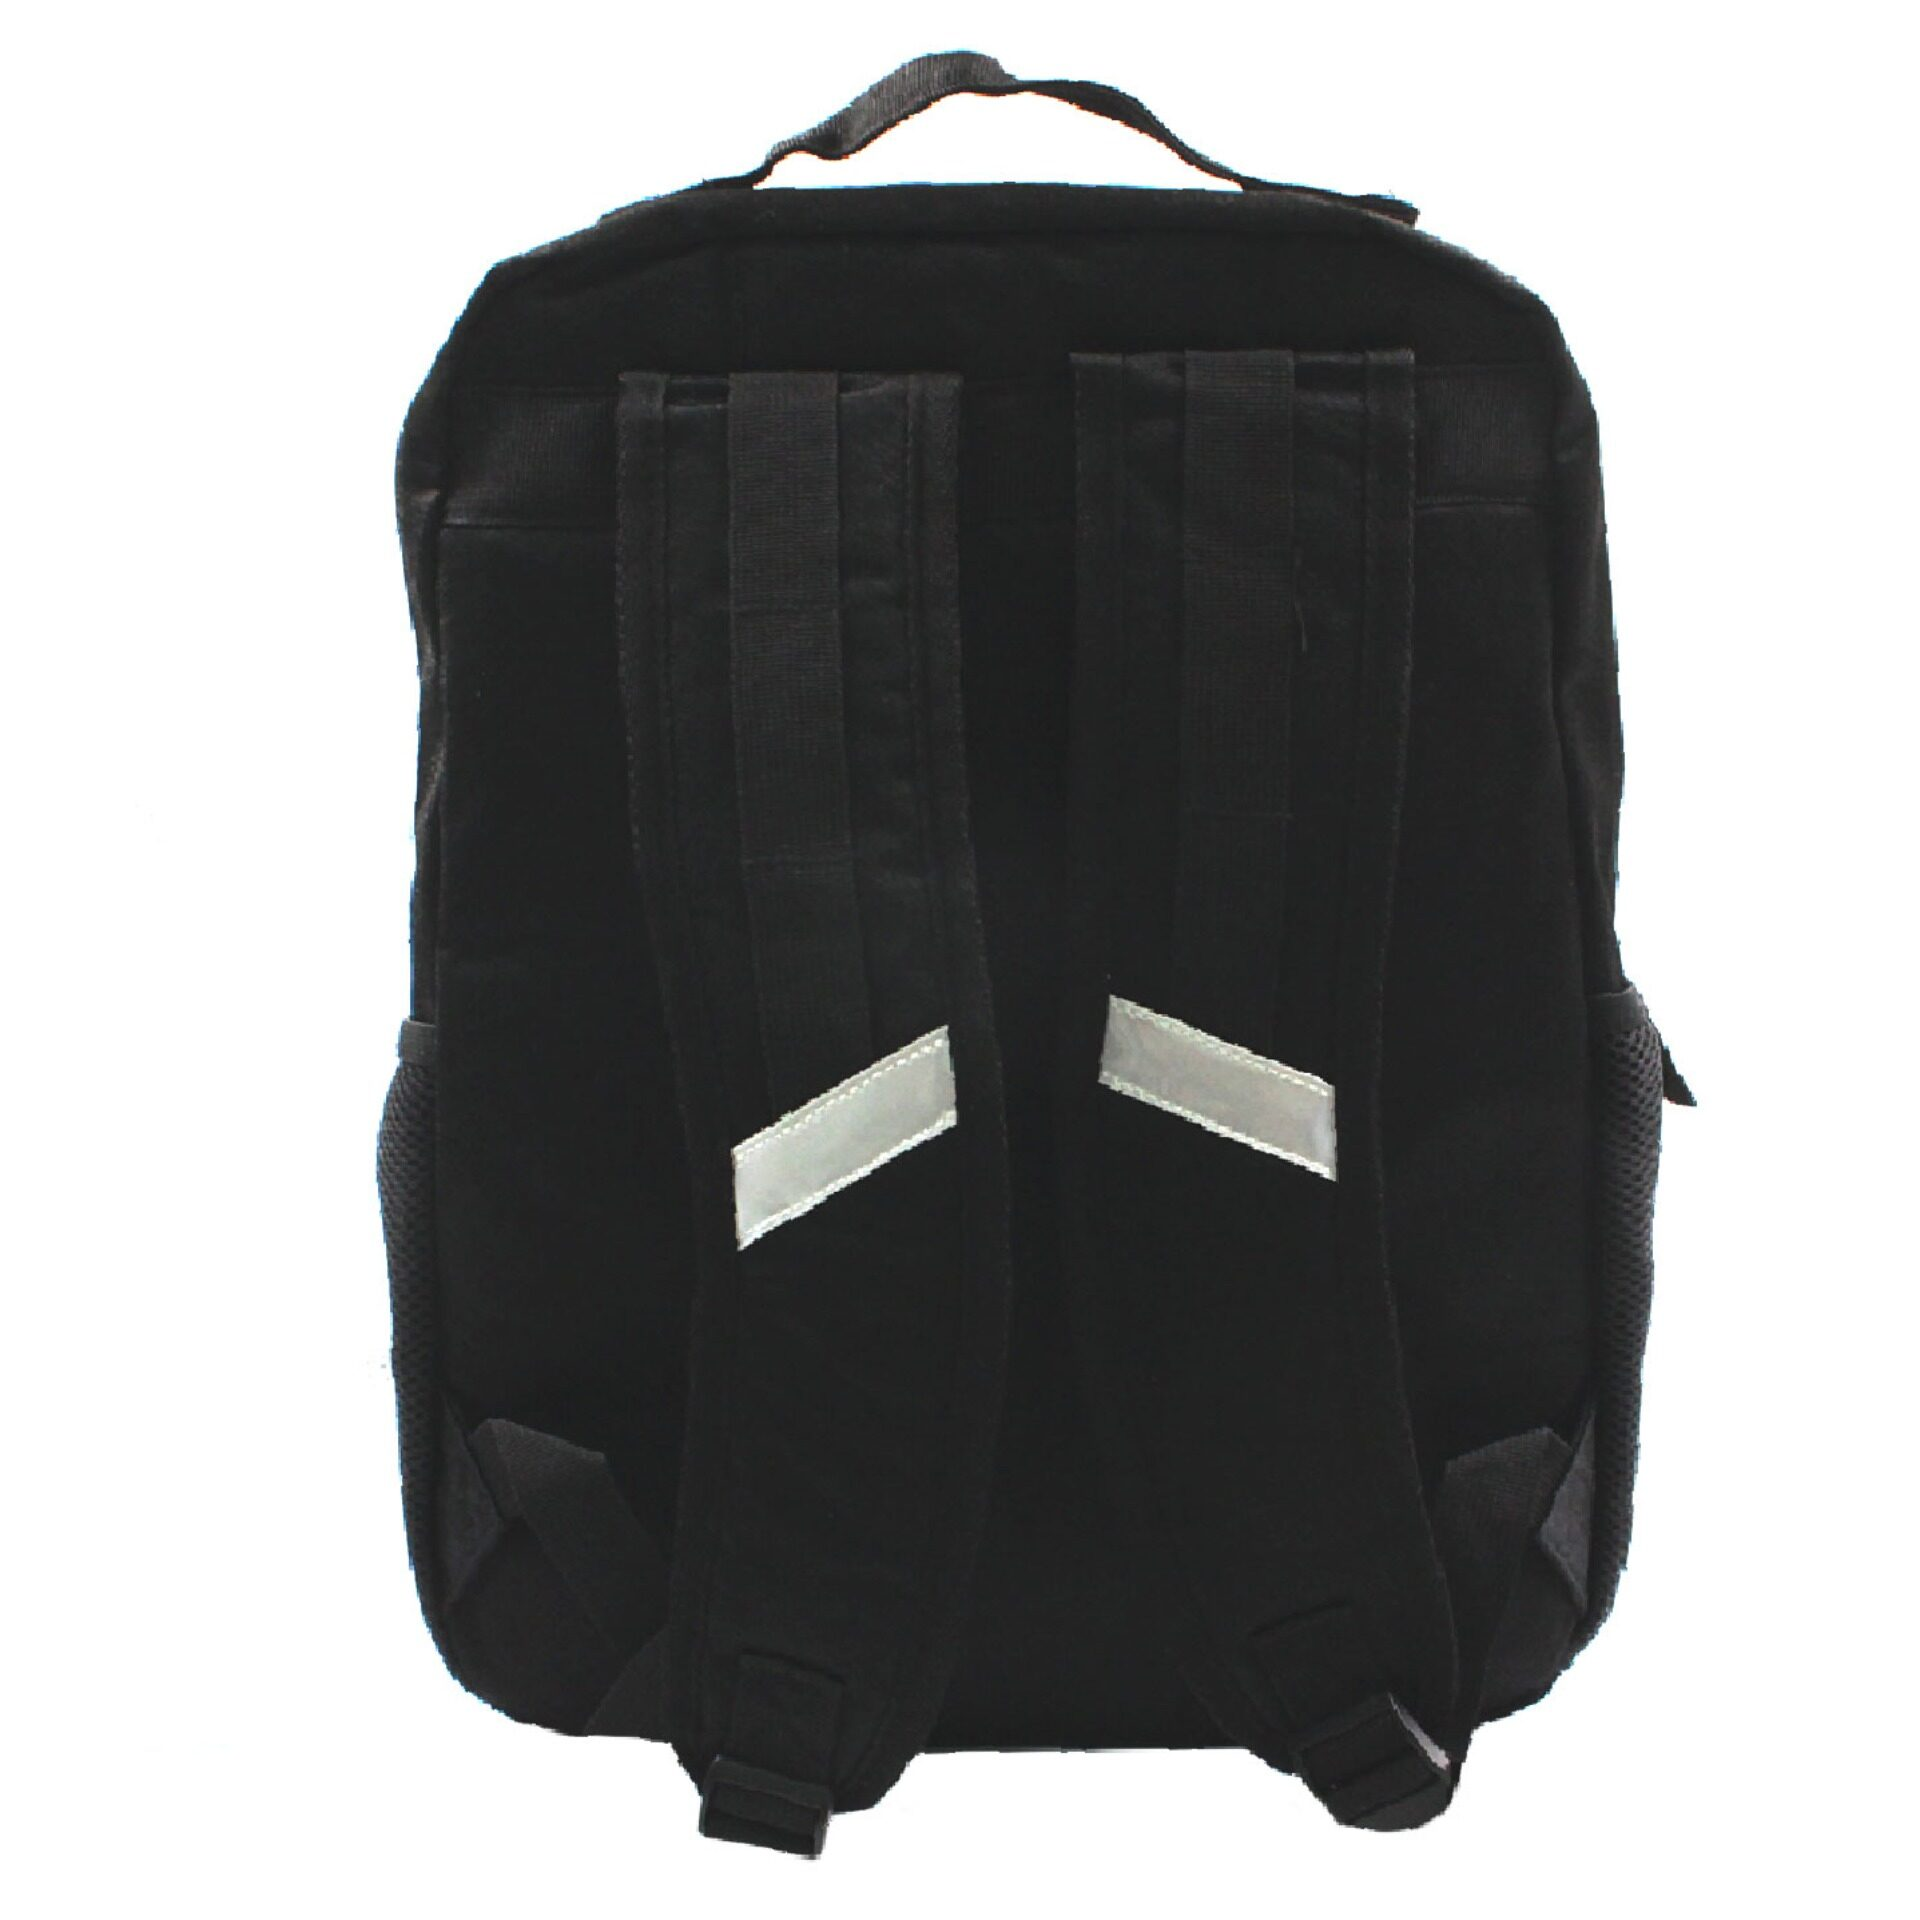 Star Wars E19 With Storm Trooper Icon Mesh Black Backpack (For Age 13 & Above)